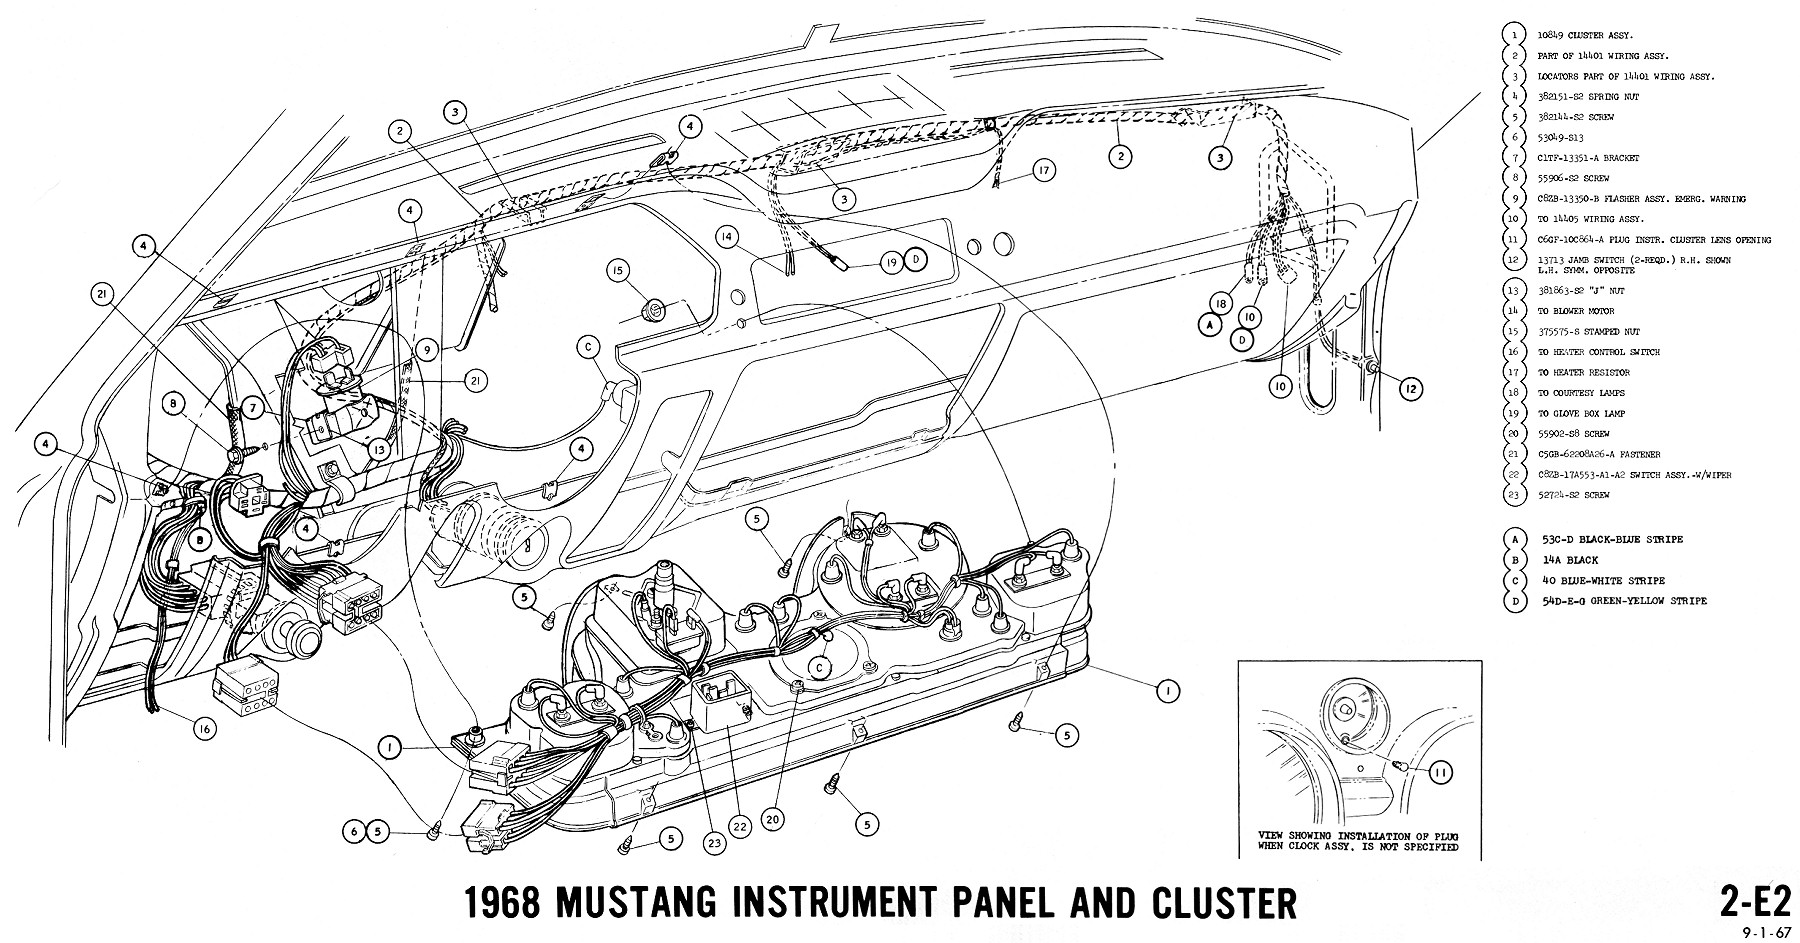 1968 mustang wiring diagram instruments 2 1968 mustang wiring diagrams and vacuum schematics average joe 1969 mustang dash wiring diagram at fashall.co